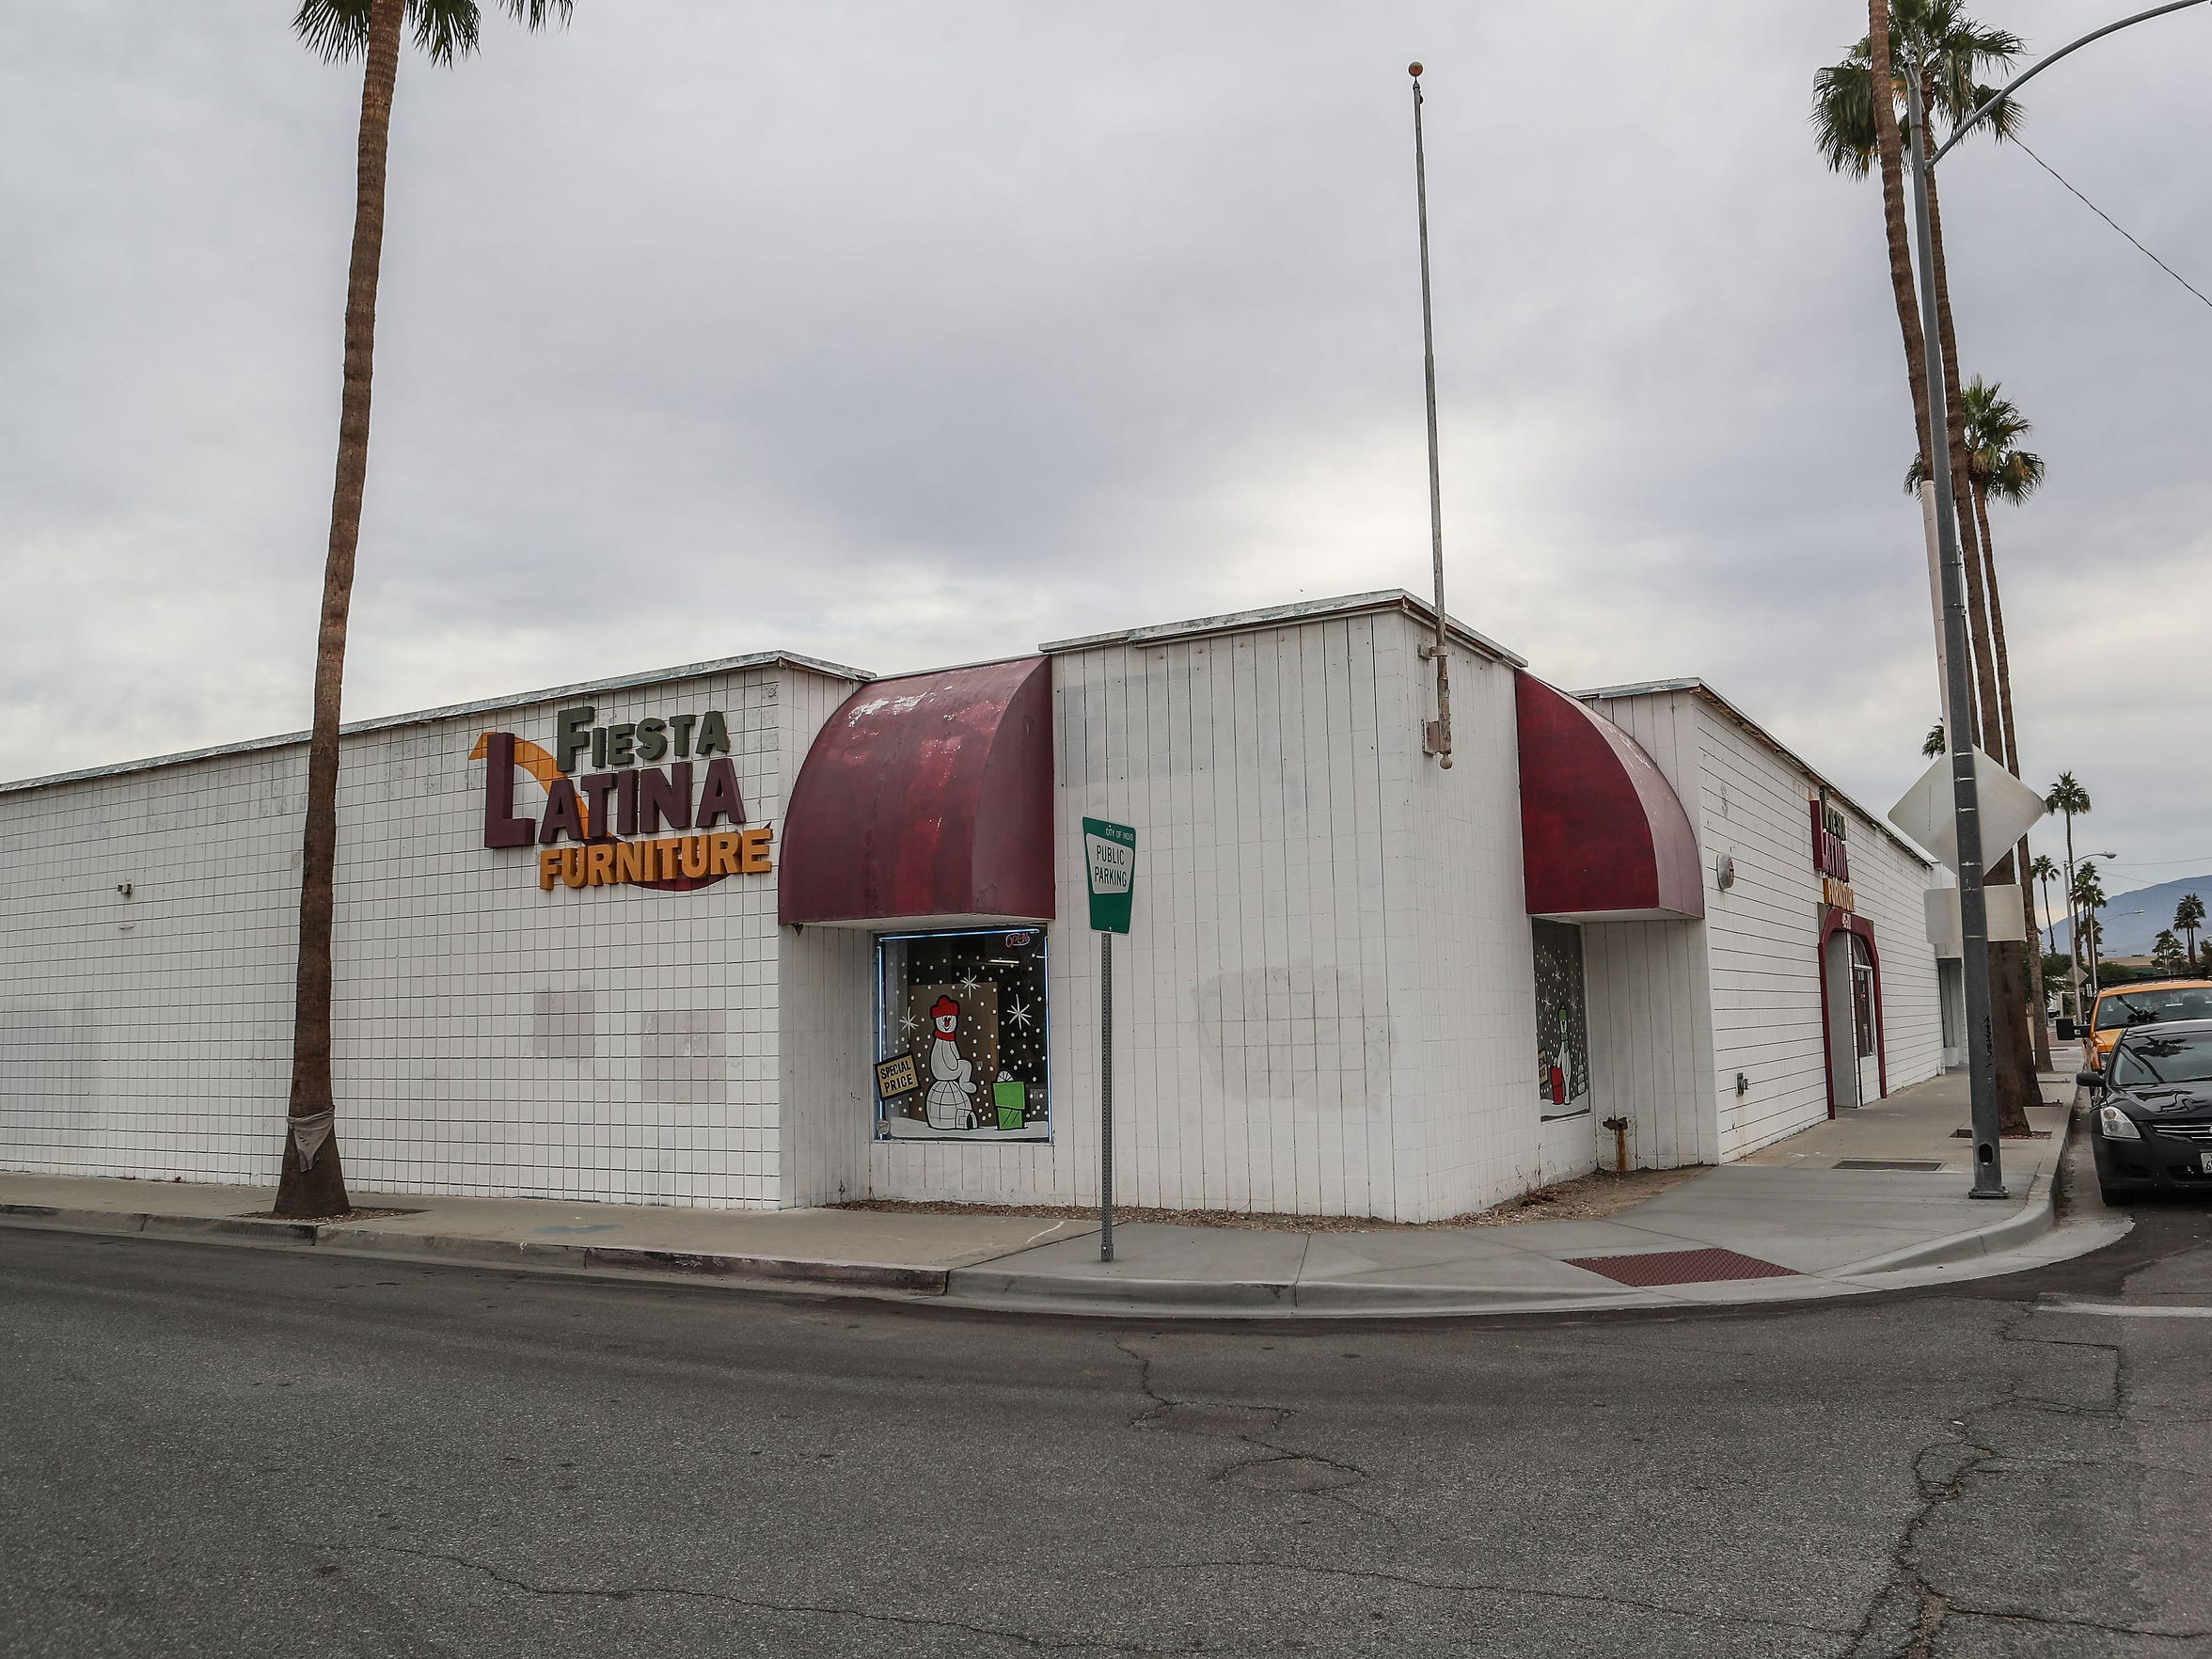 Fiesta Latina, a family-owned furniture store in downtown Indio, was billed $3,327 by city prosecutors because it put a sign on its roof without the proper permits.